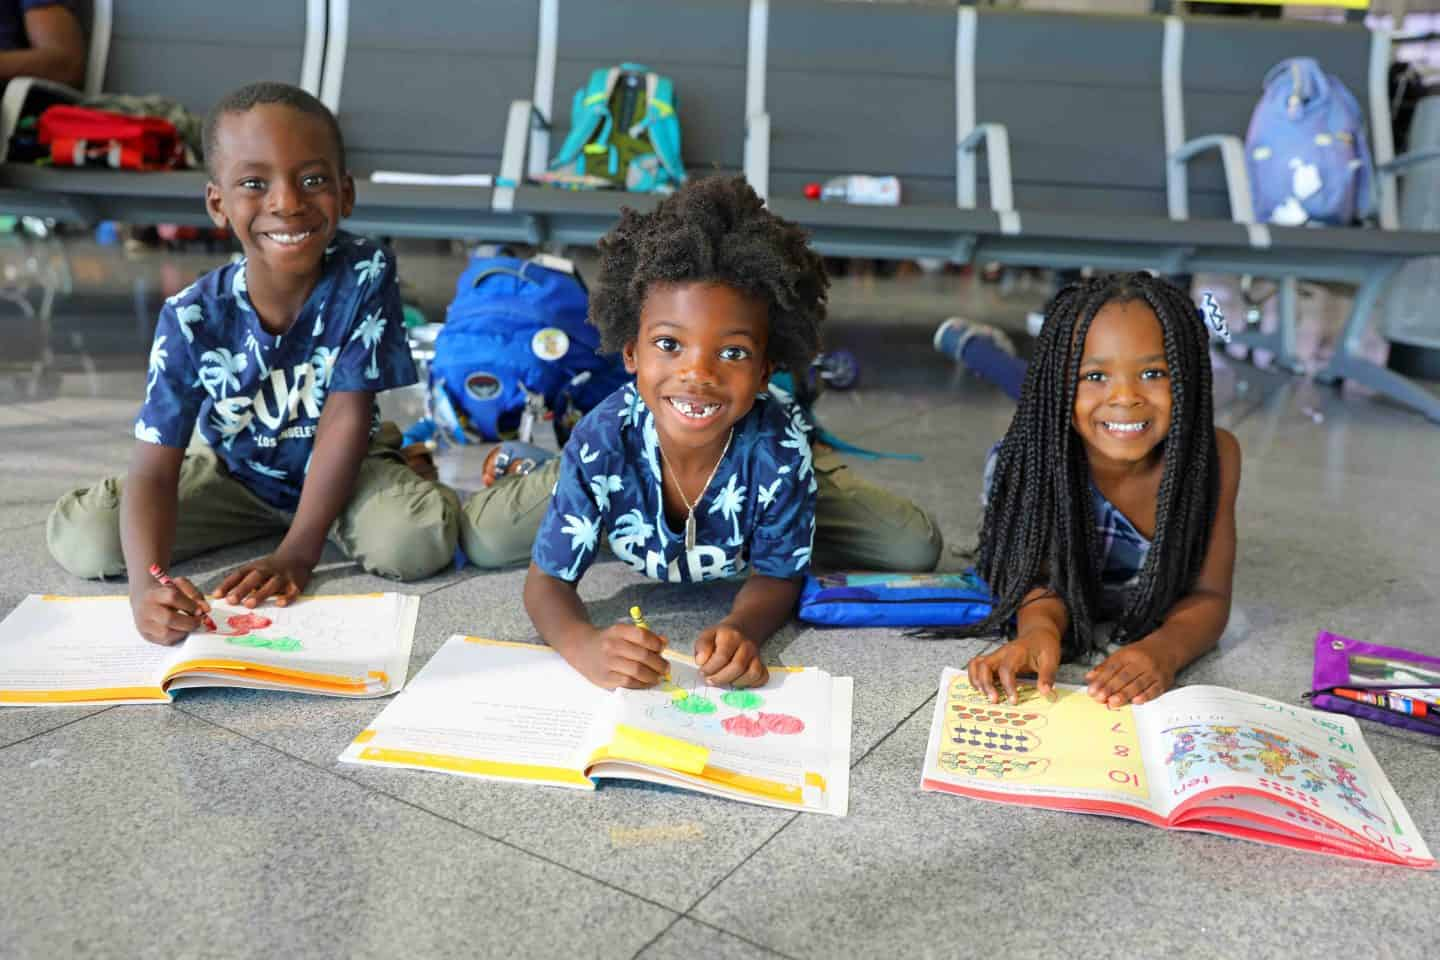 A Comprehensive Resource Guide For Black Homeschooling Families